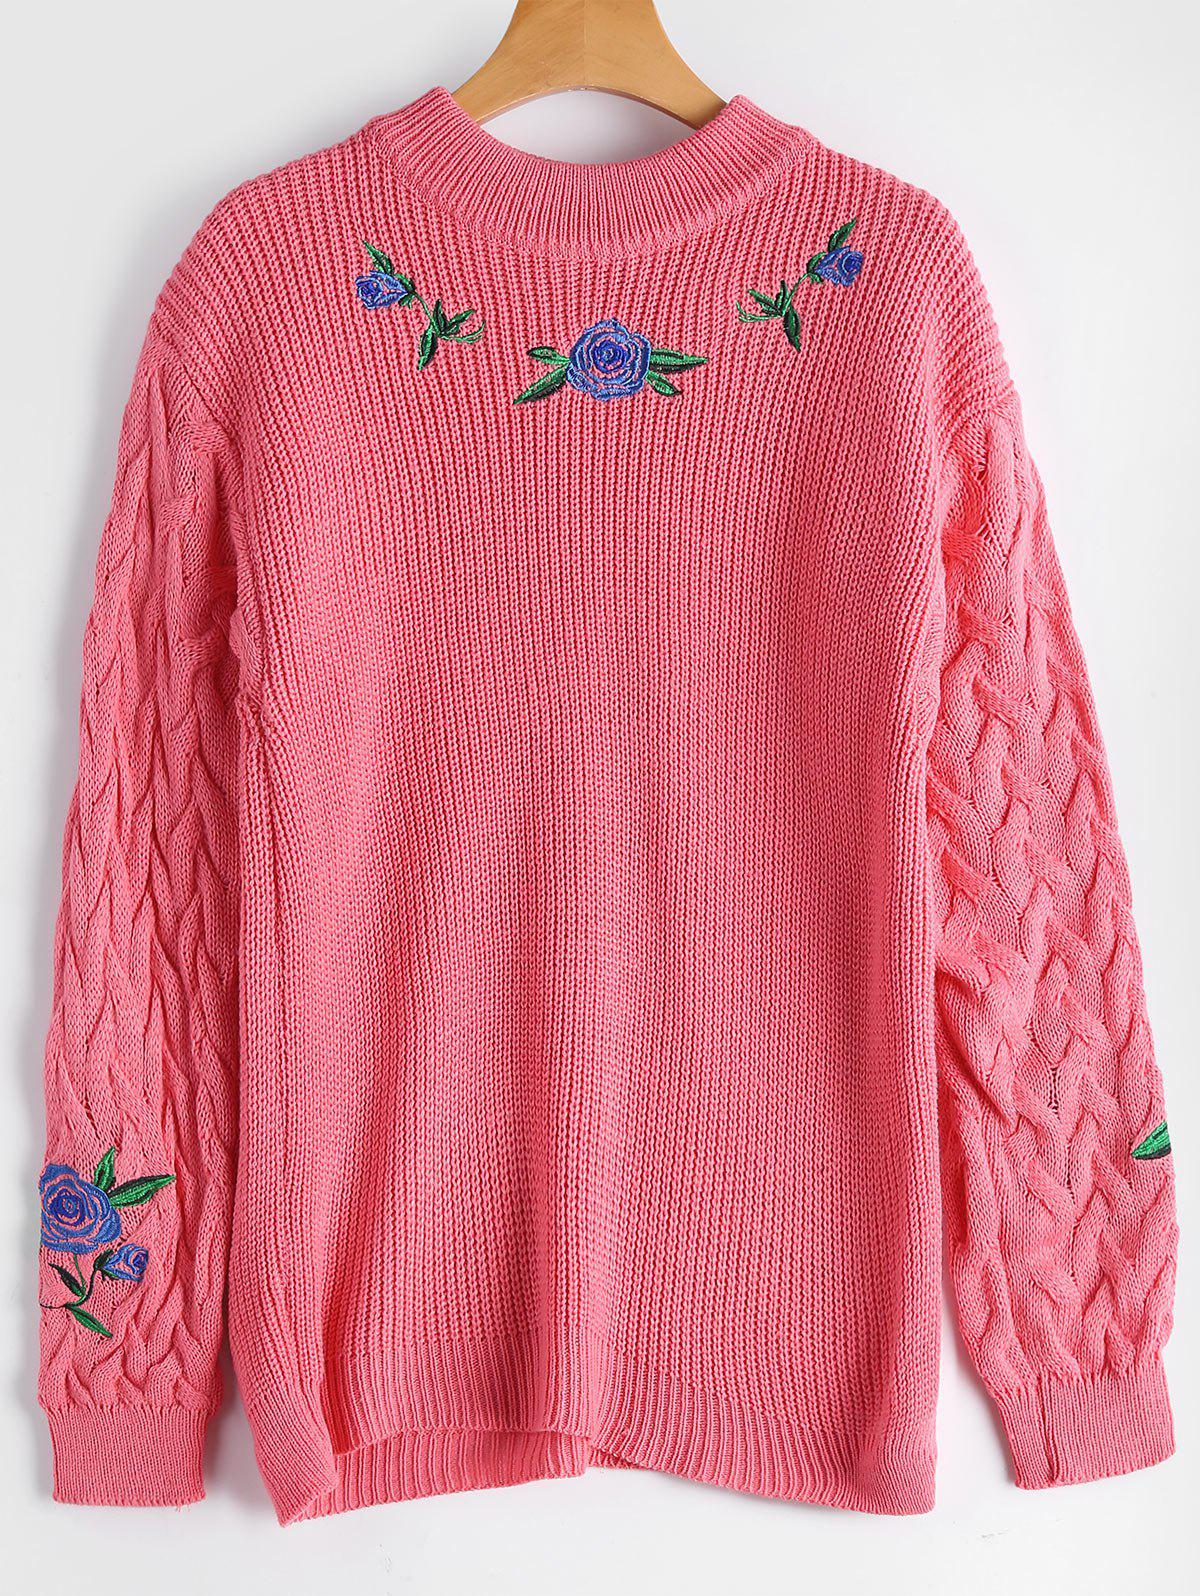 Ribbed Floral Embroidered Cable Knit Sweater 223431703